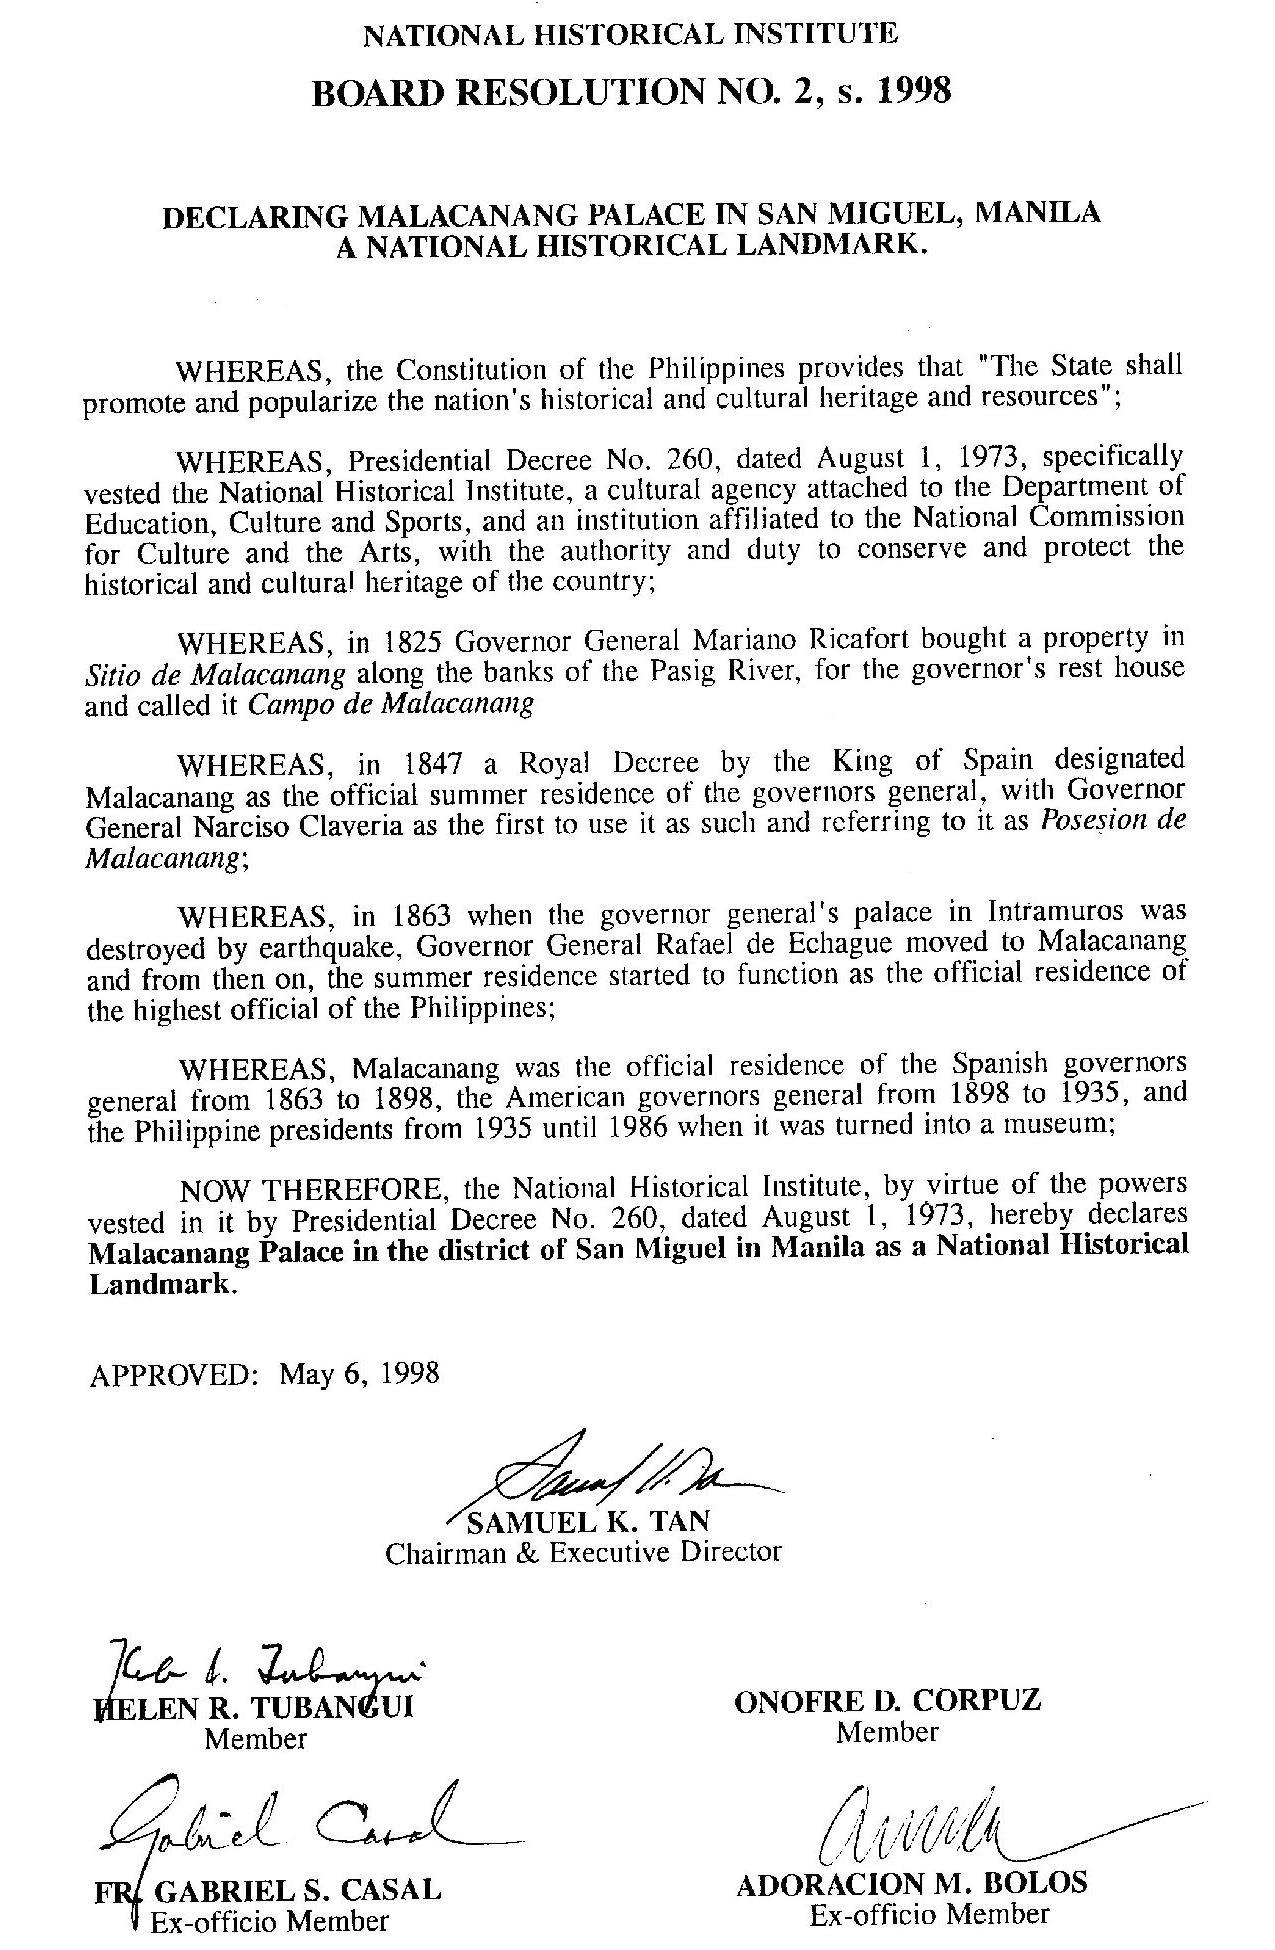 File:National Historical Institute Resolution No  02, S